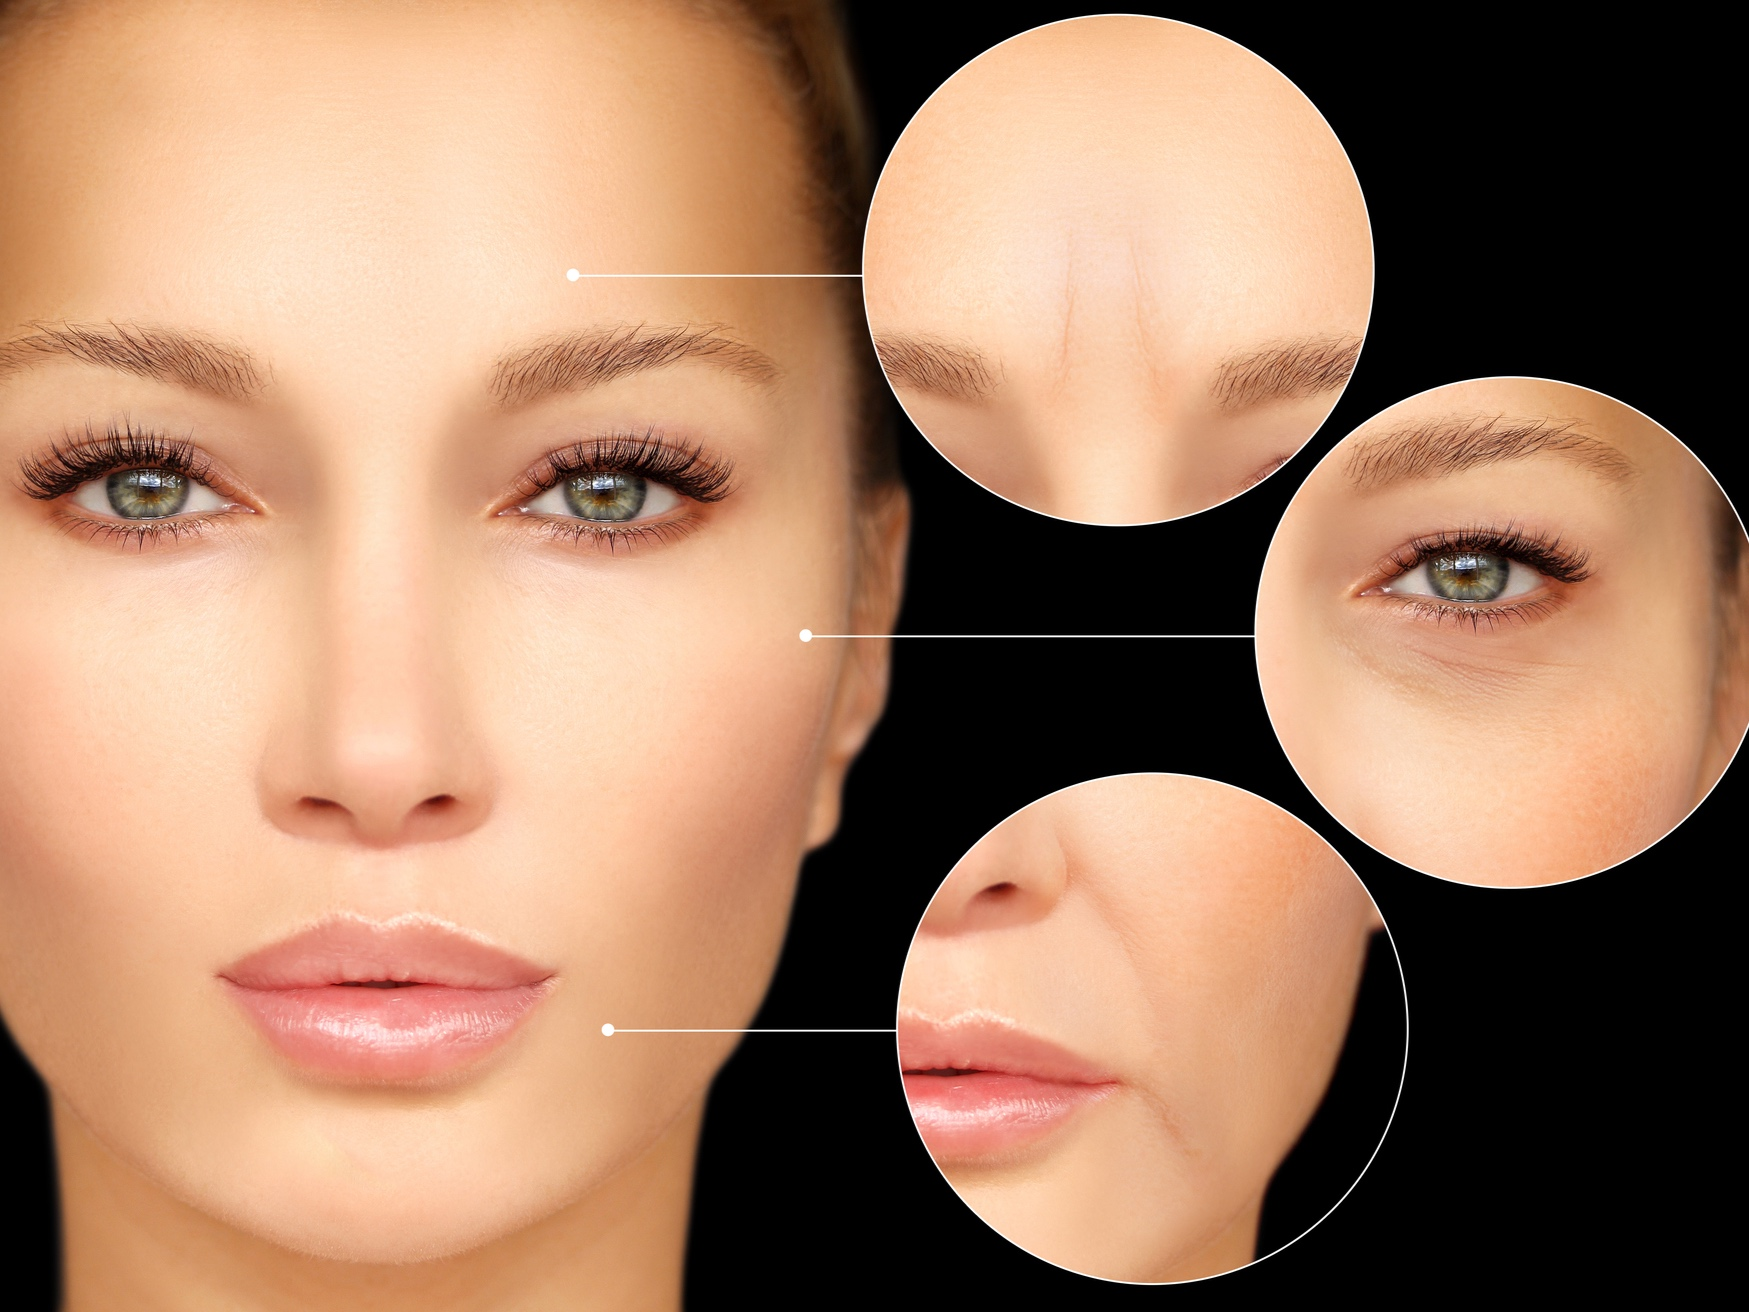 Botox® - It is the most popular non-cosmetic procedure to improving the appearance of lines/wrinkles.